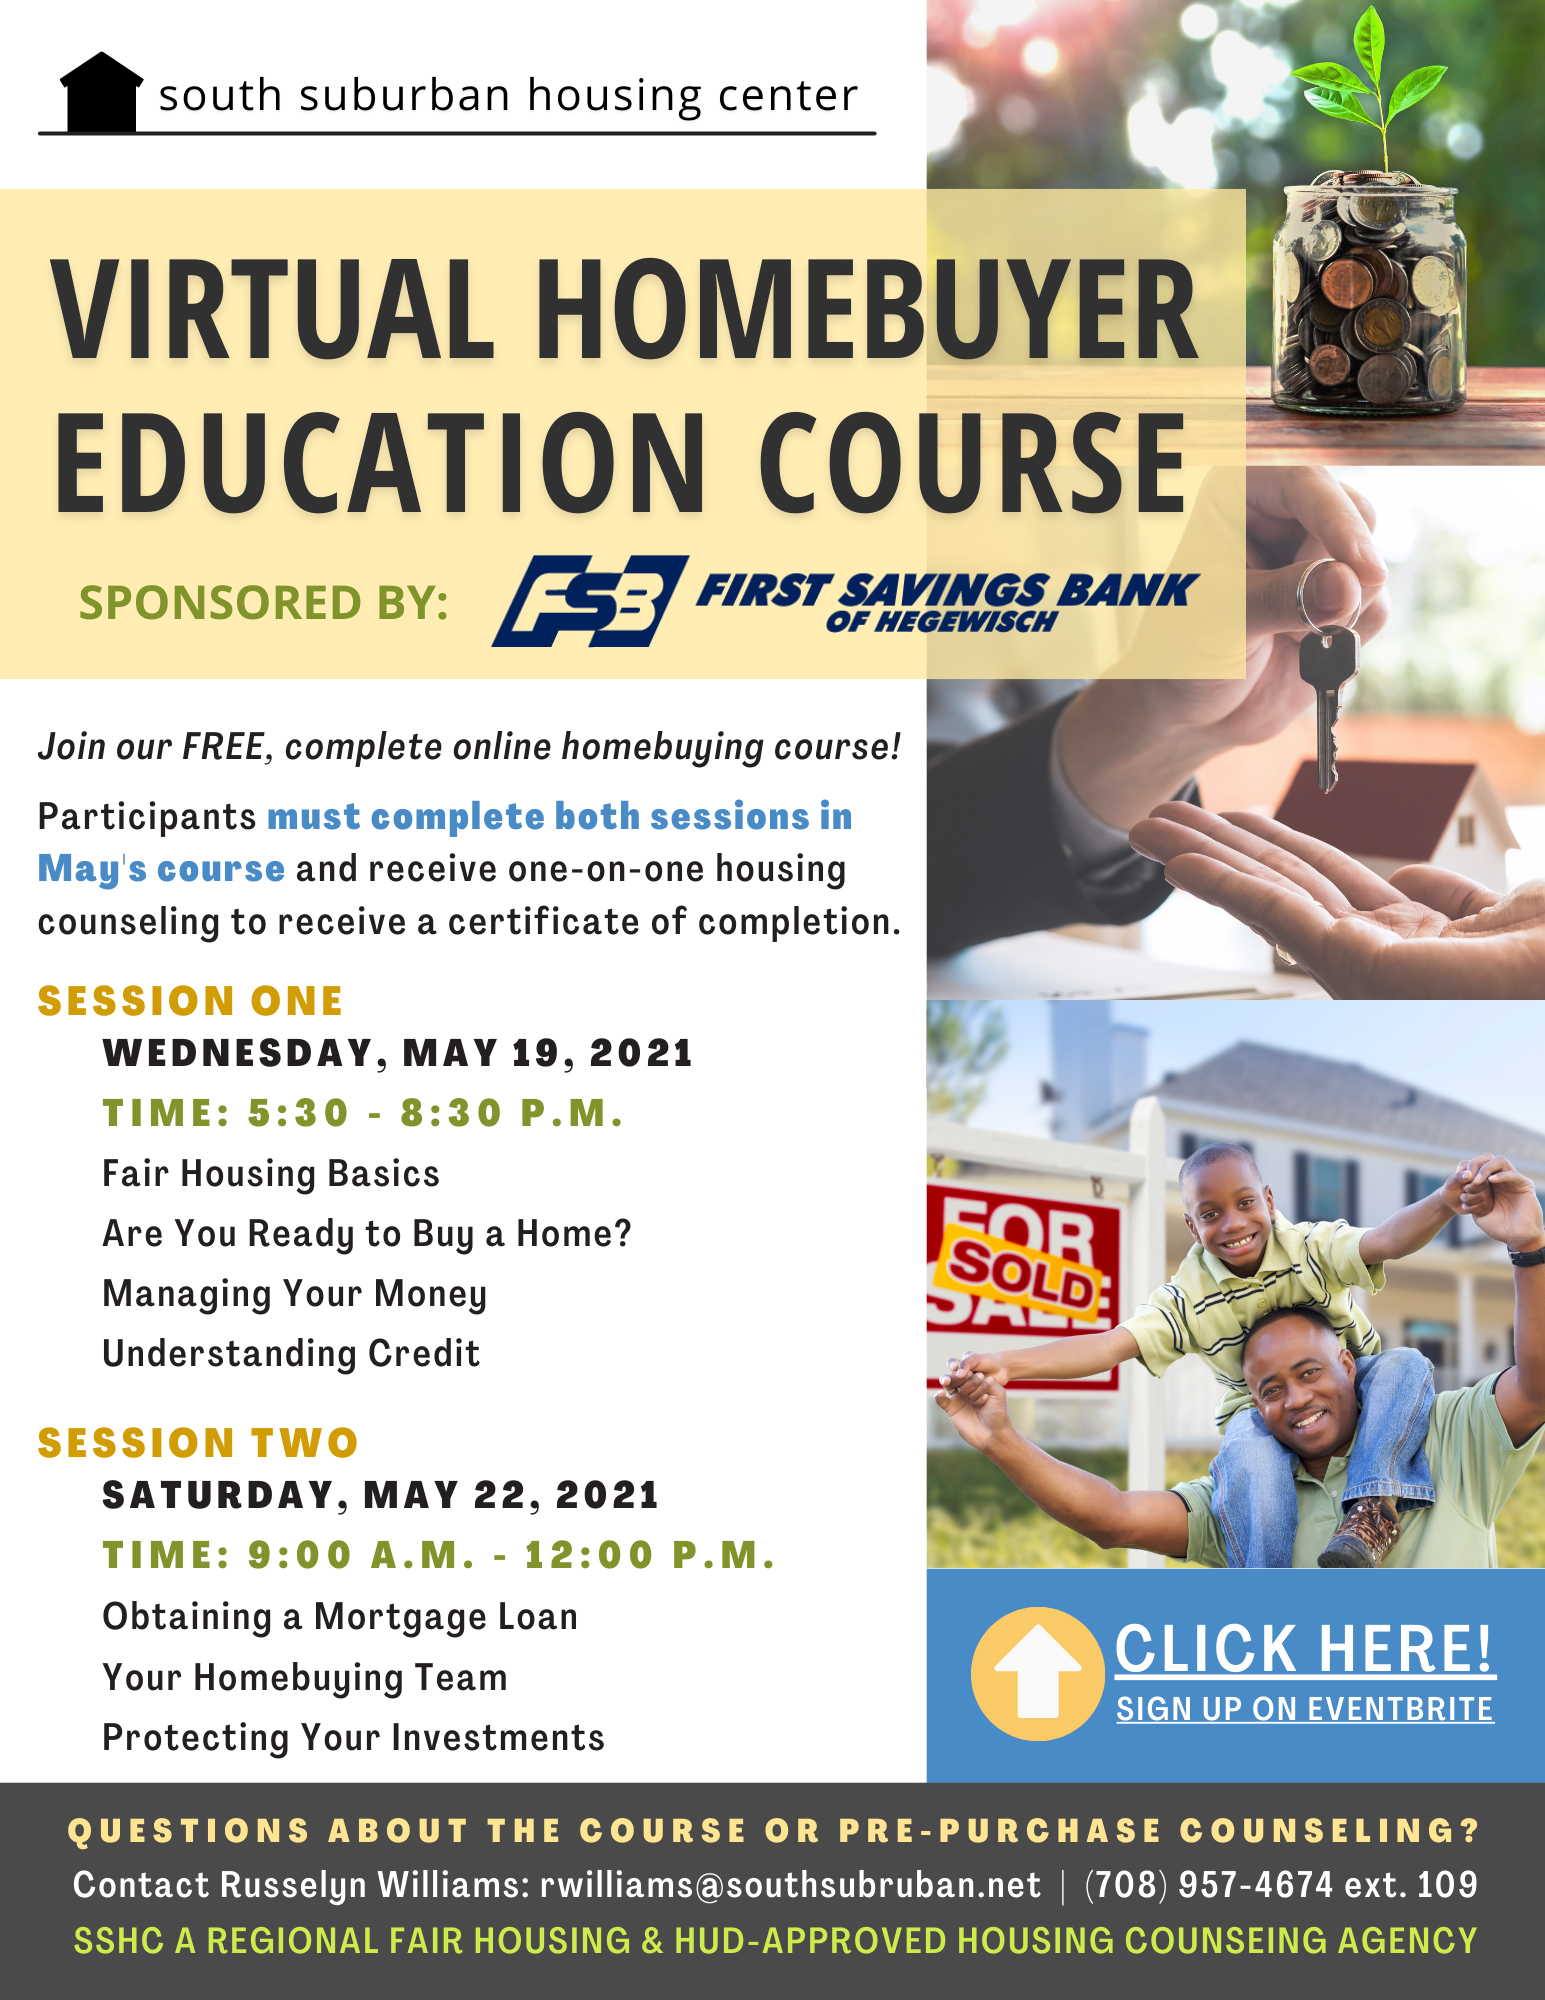 May Homebuyer Education Course, virtual and free 5/19 & 5/22, click here.